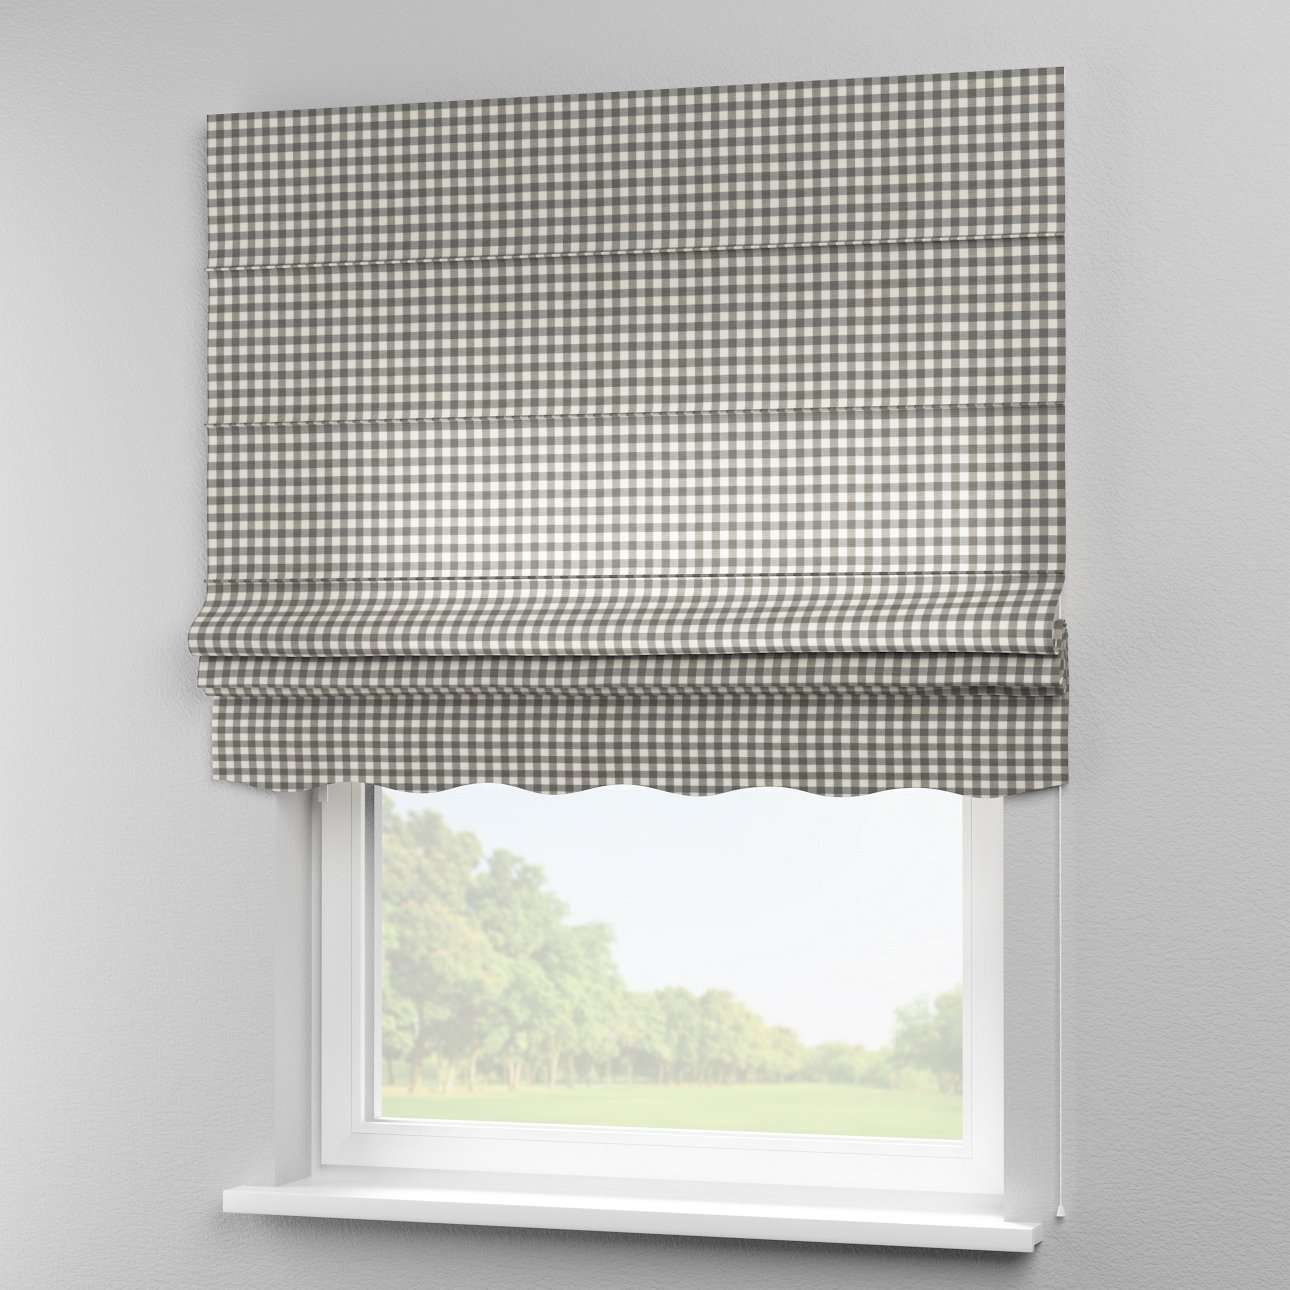 Florence roman blind  80 x 170 cm (31.5 x 67 inch) in collection Quadro, fabric: 136-11